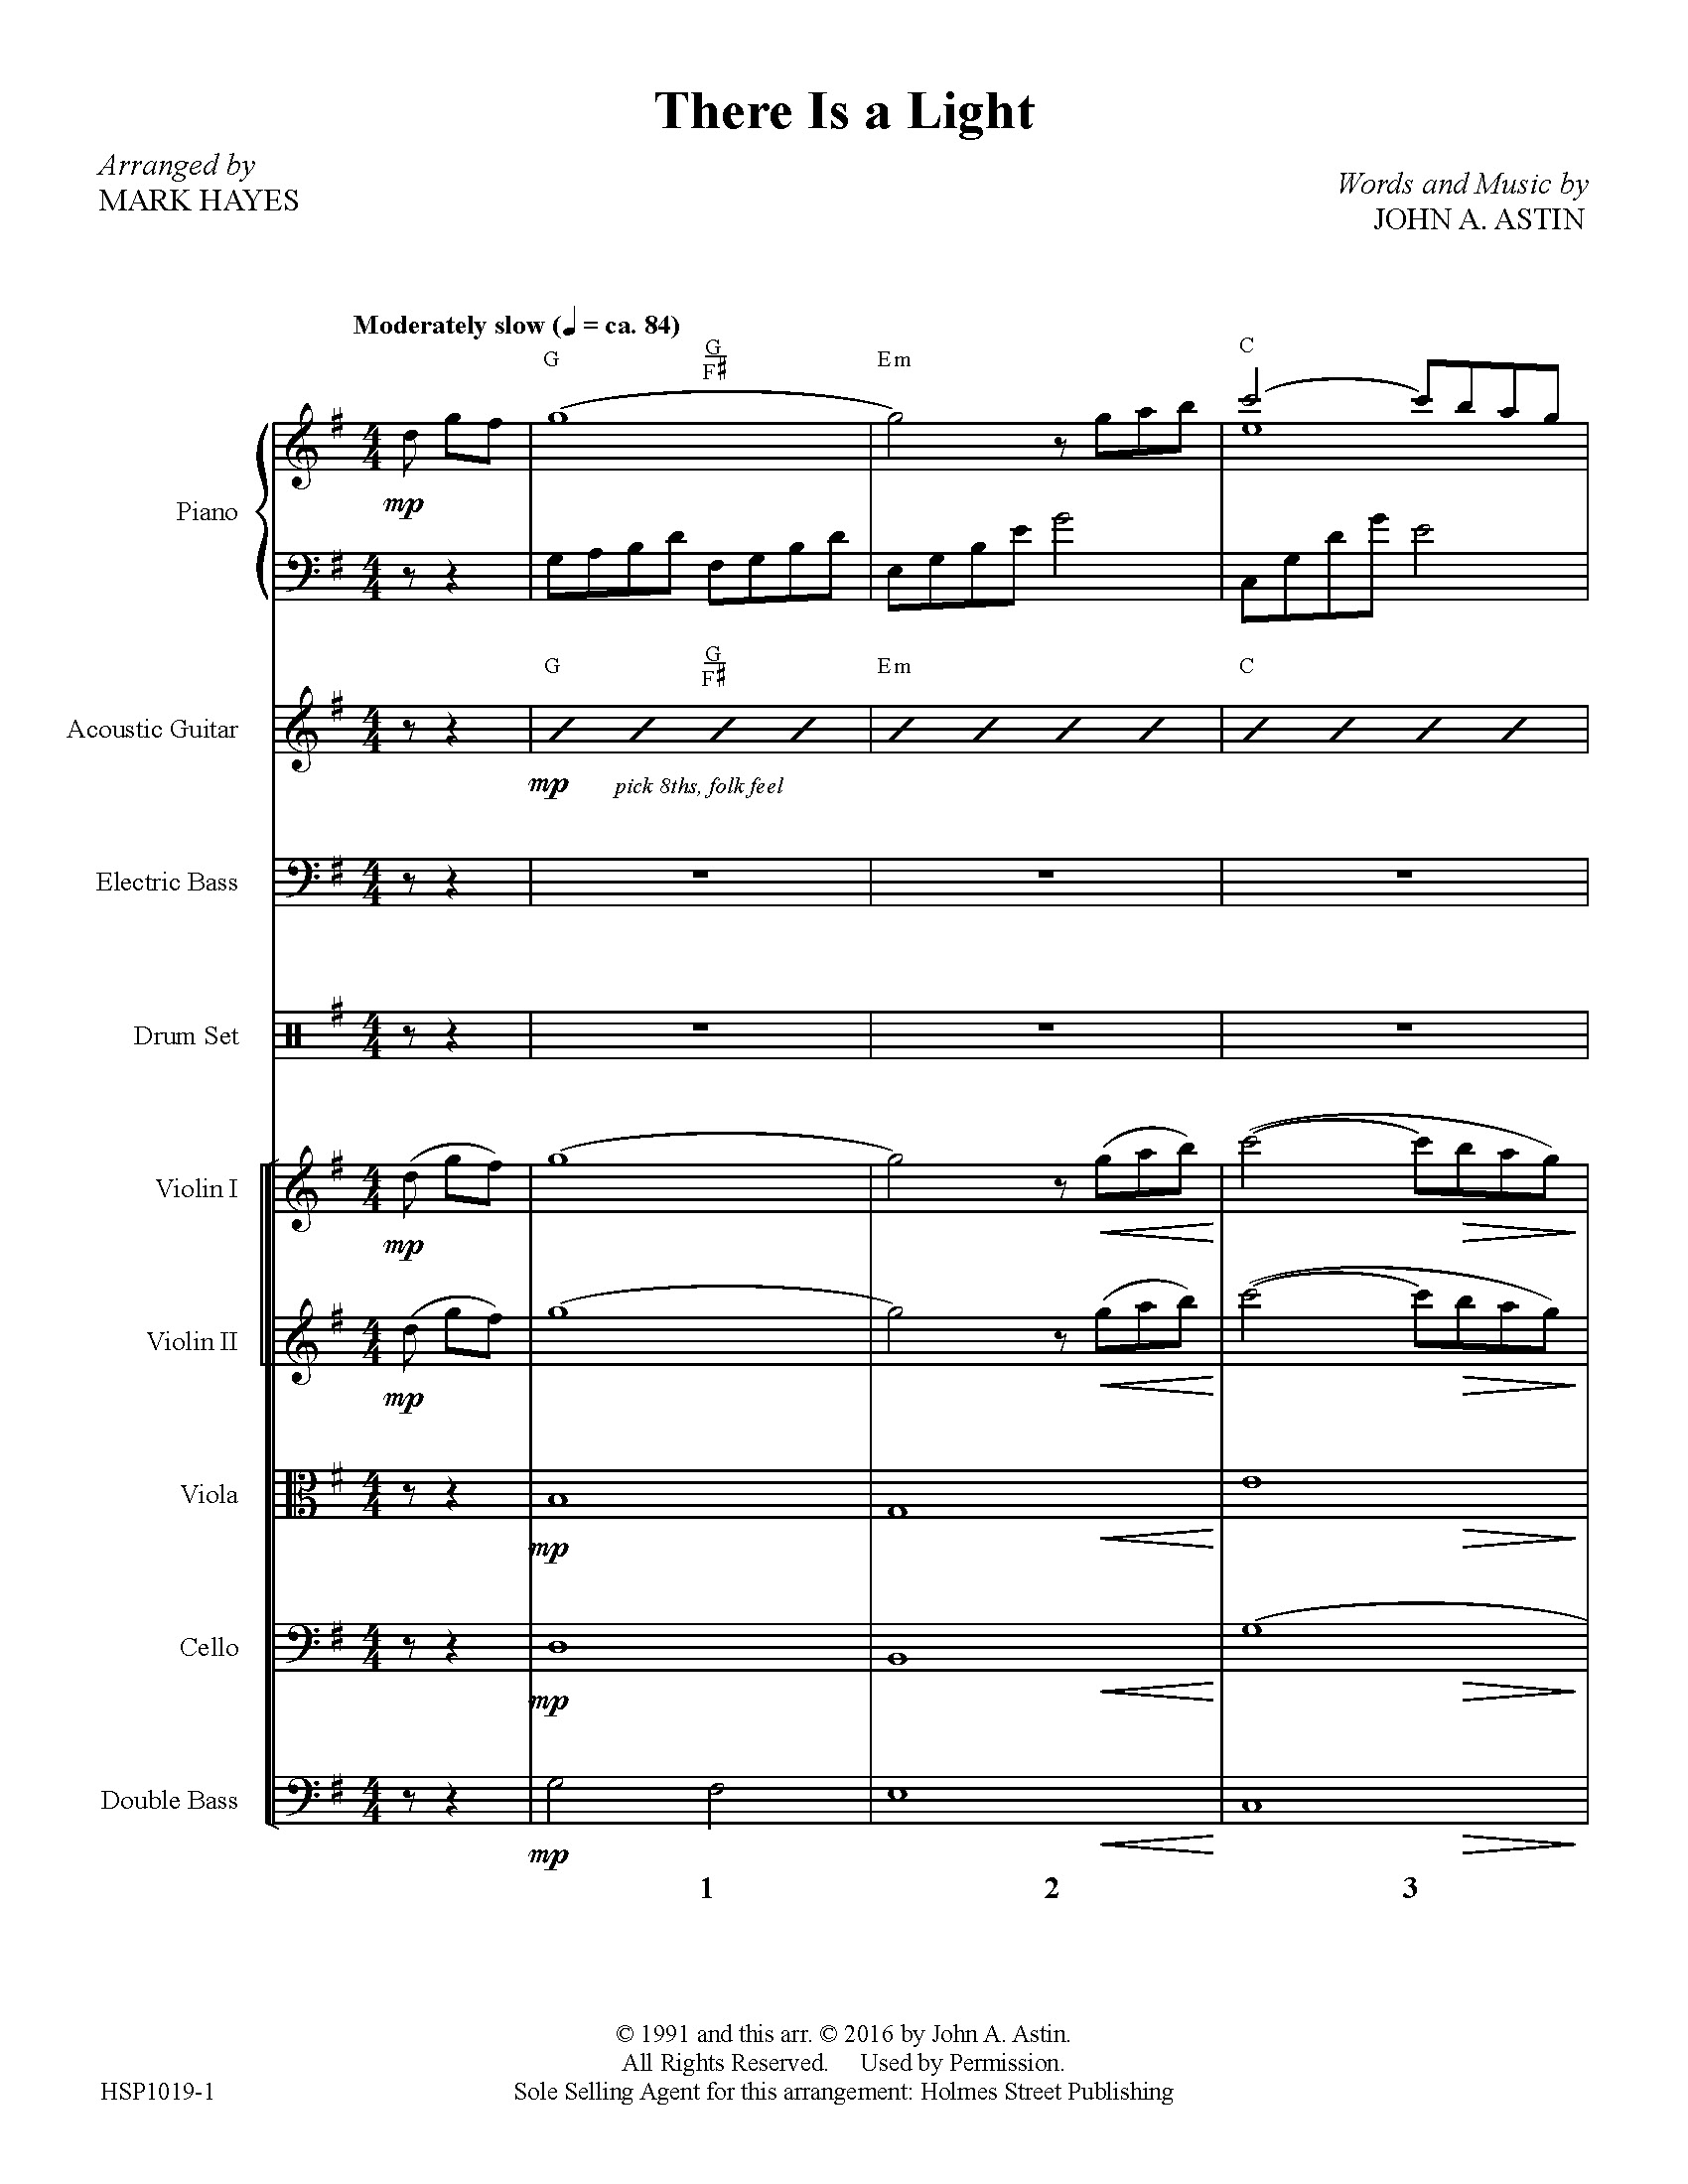 There Is a Light - Instrumental Score and Parts